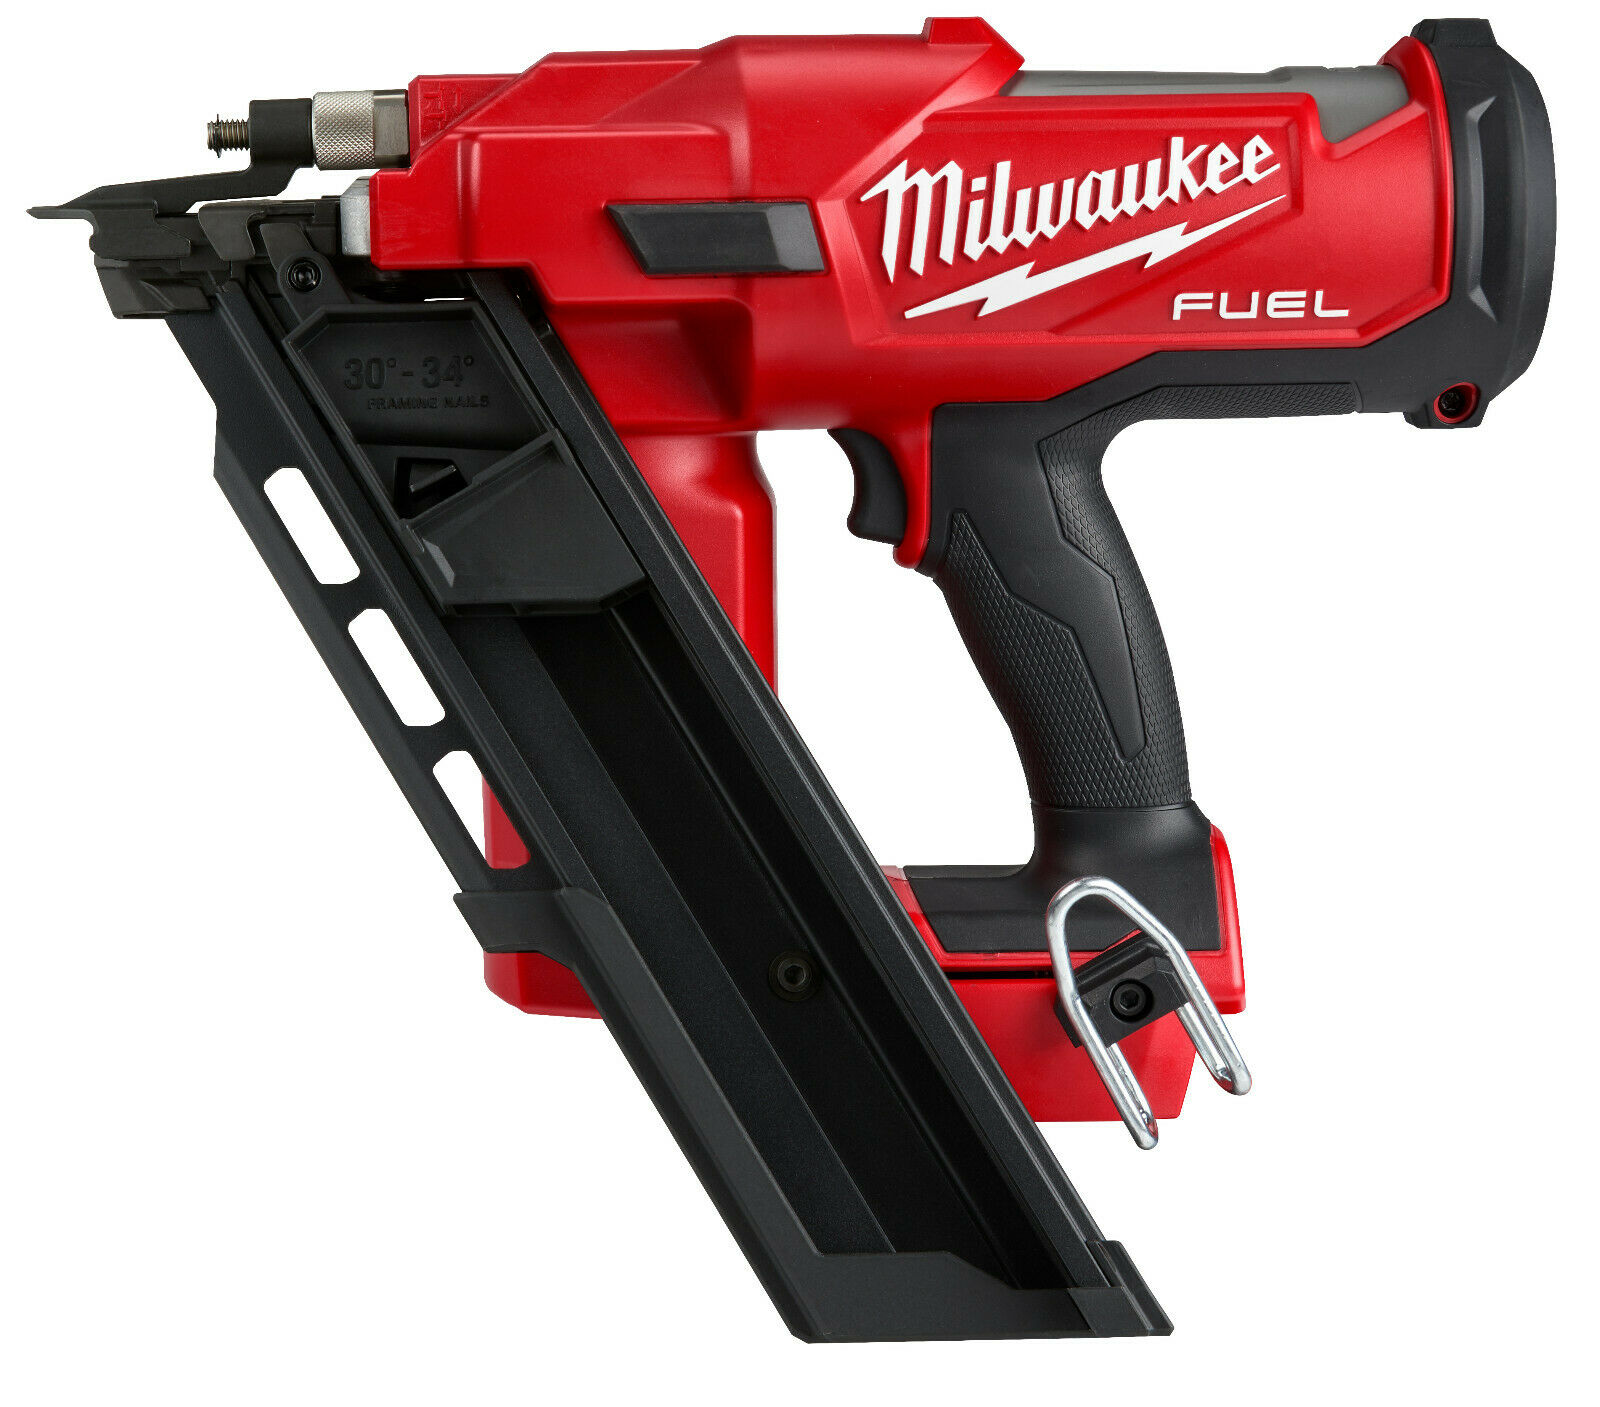 Milwaukee 2745-20 M18 FUEL 30-Degree Framing Nailer  New